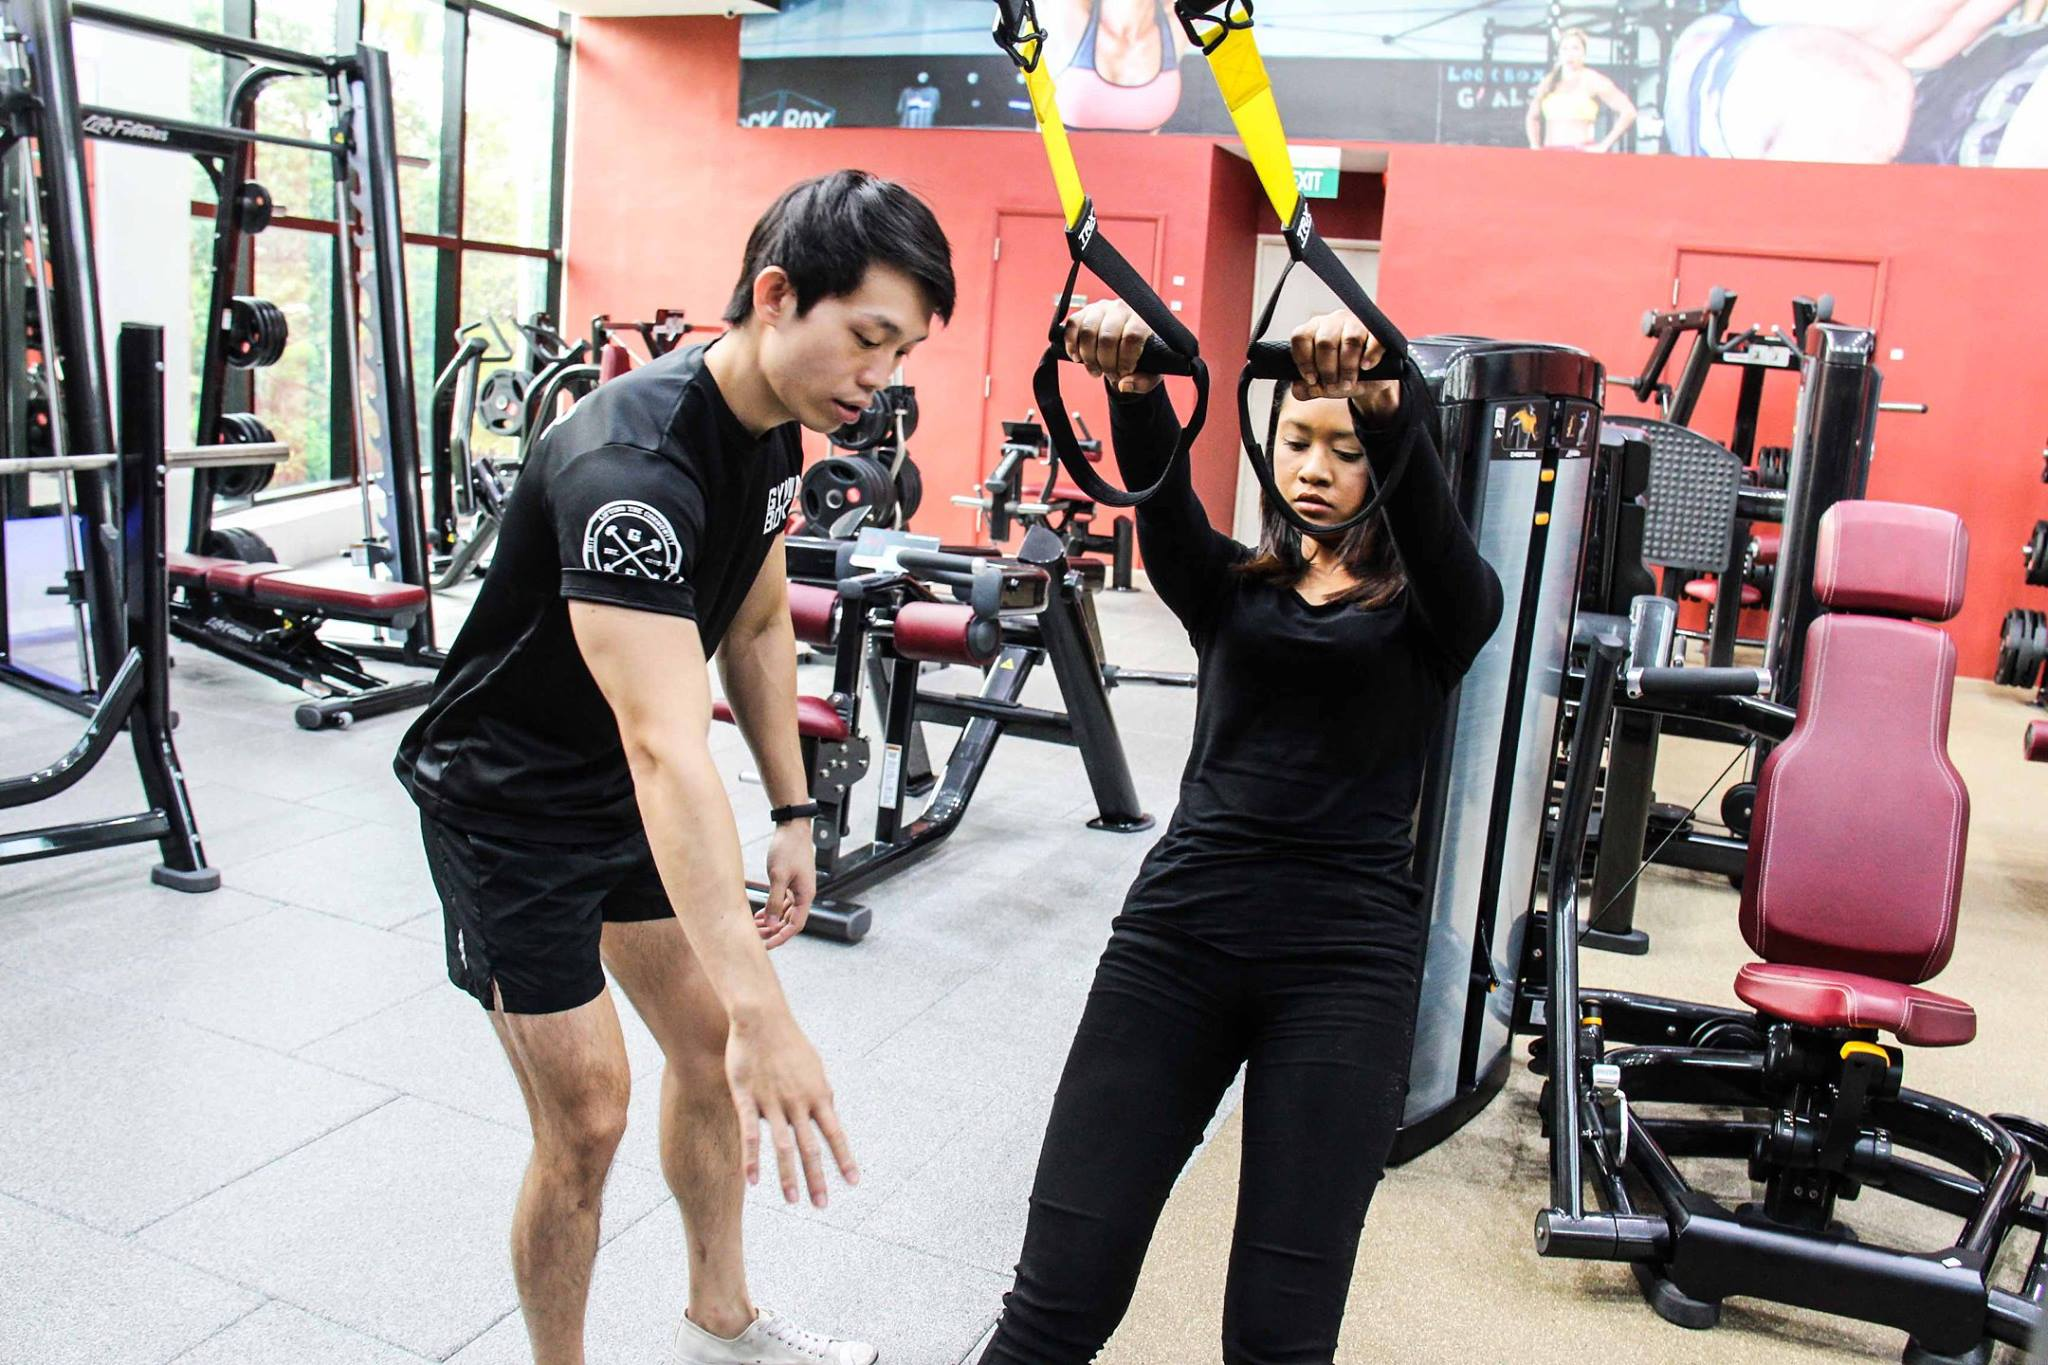 Personal trainers at Gymm Boxx